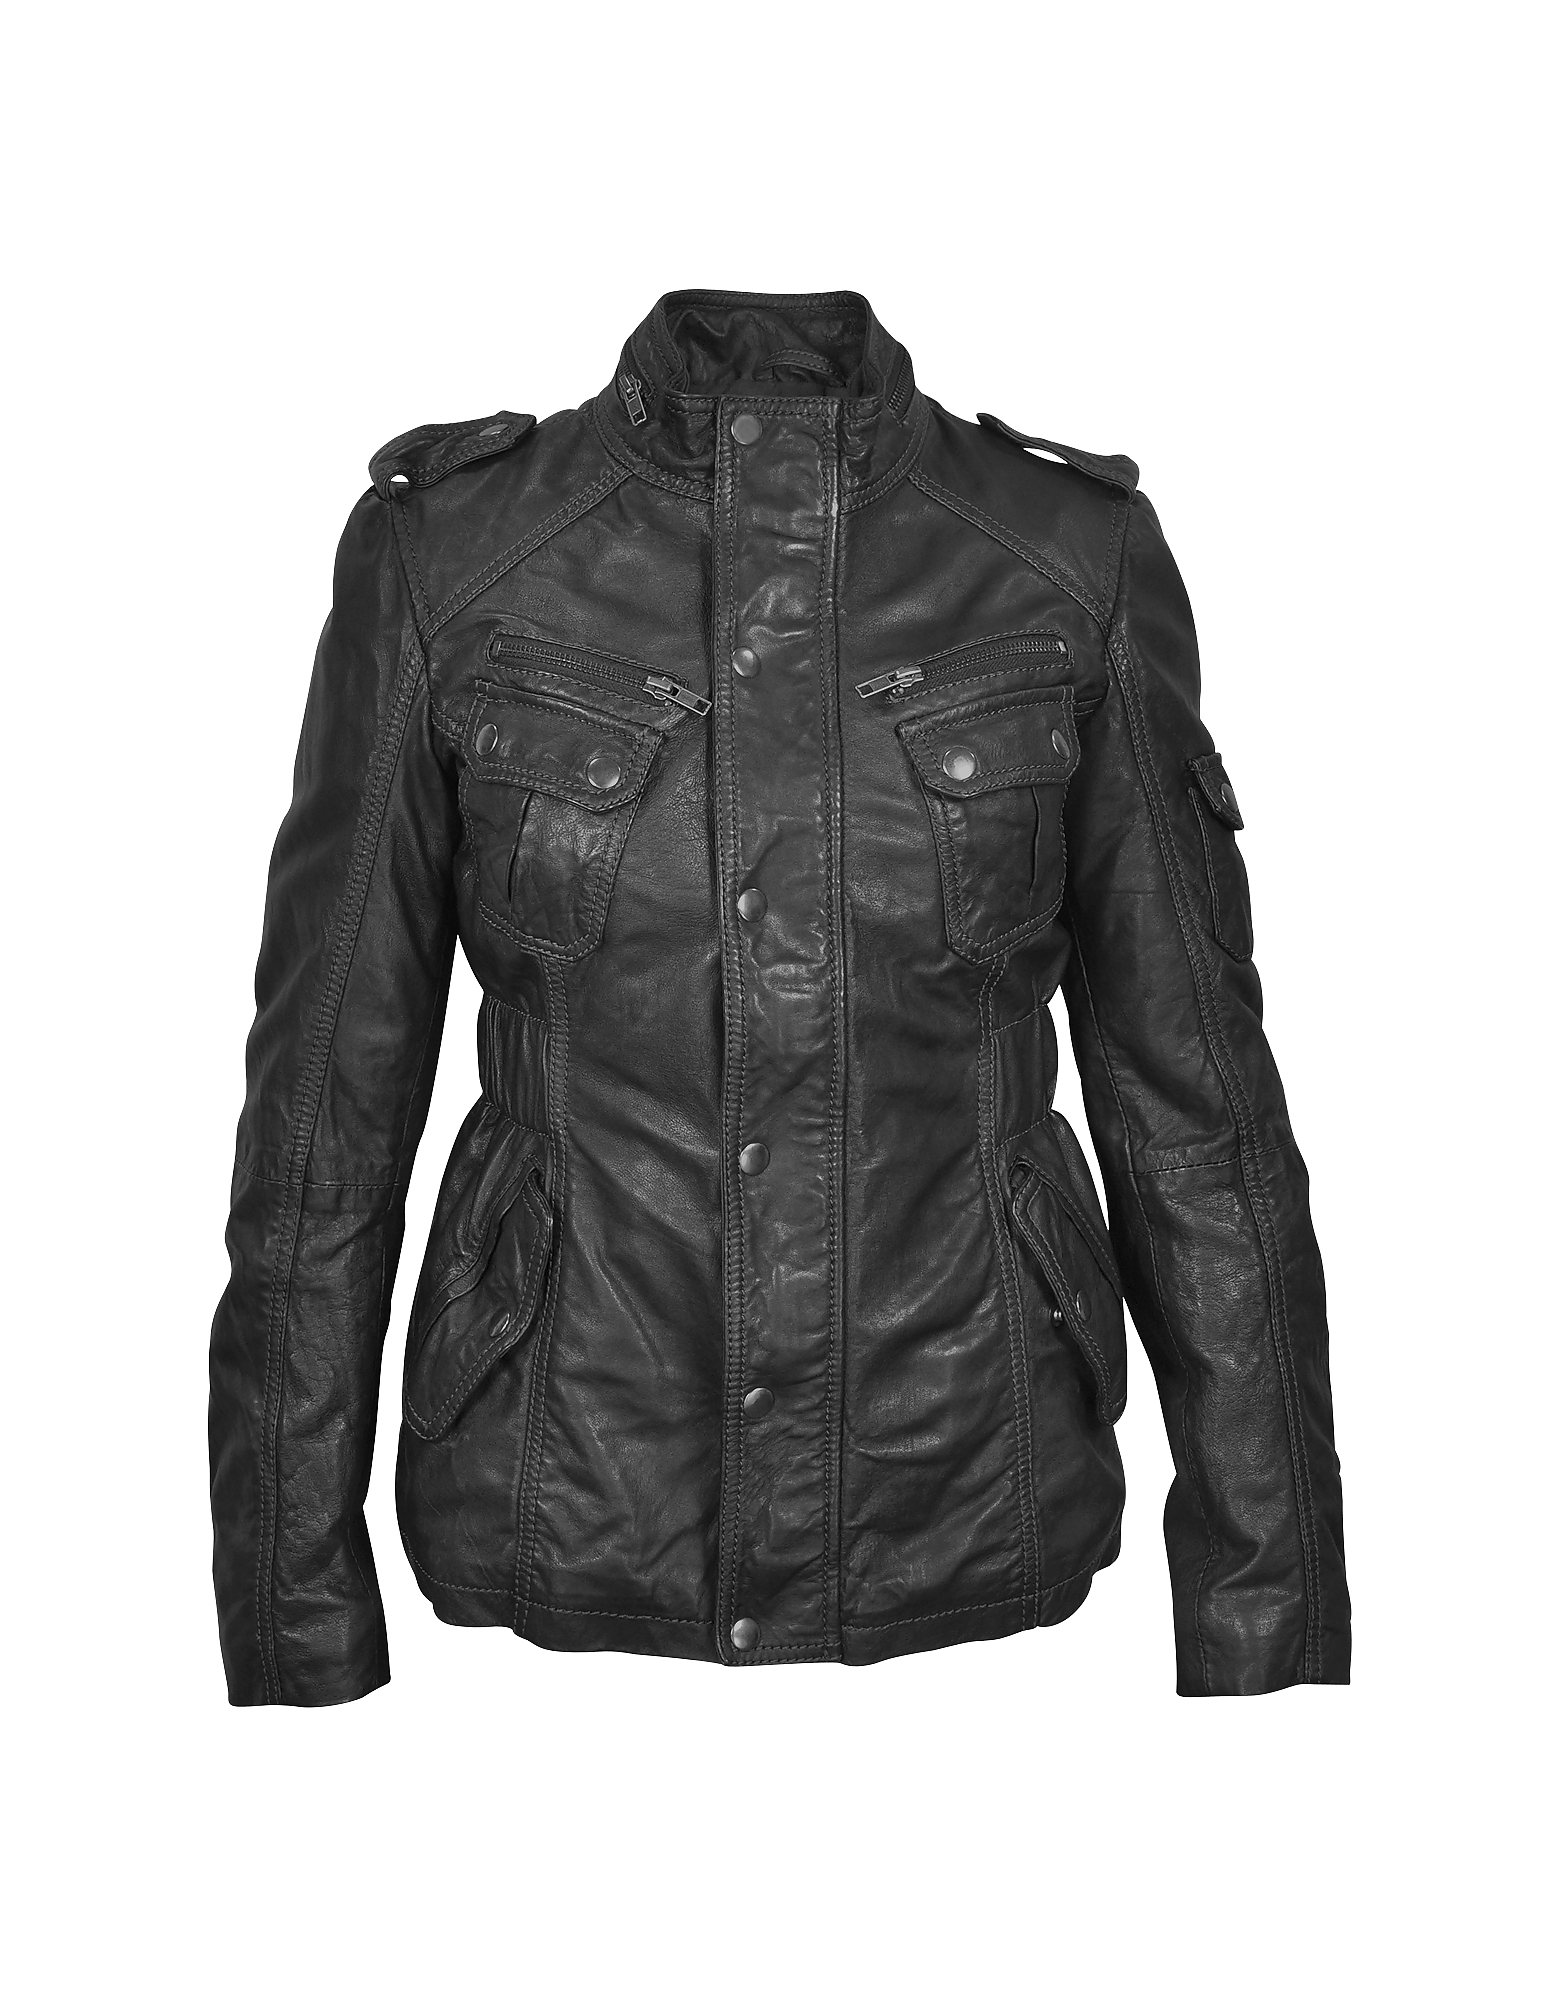 Forzieri Leather Jackets, Black Leather Jacket w/ Quilted Lining